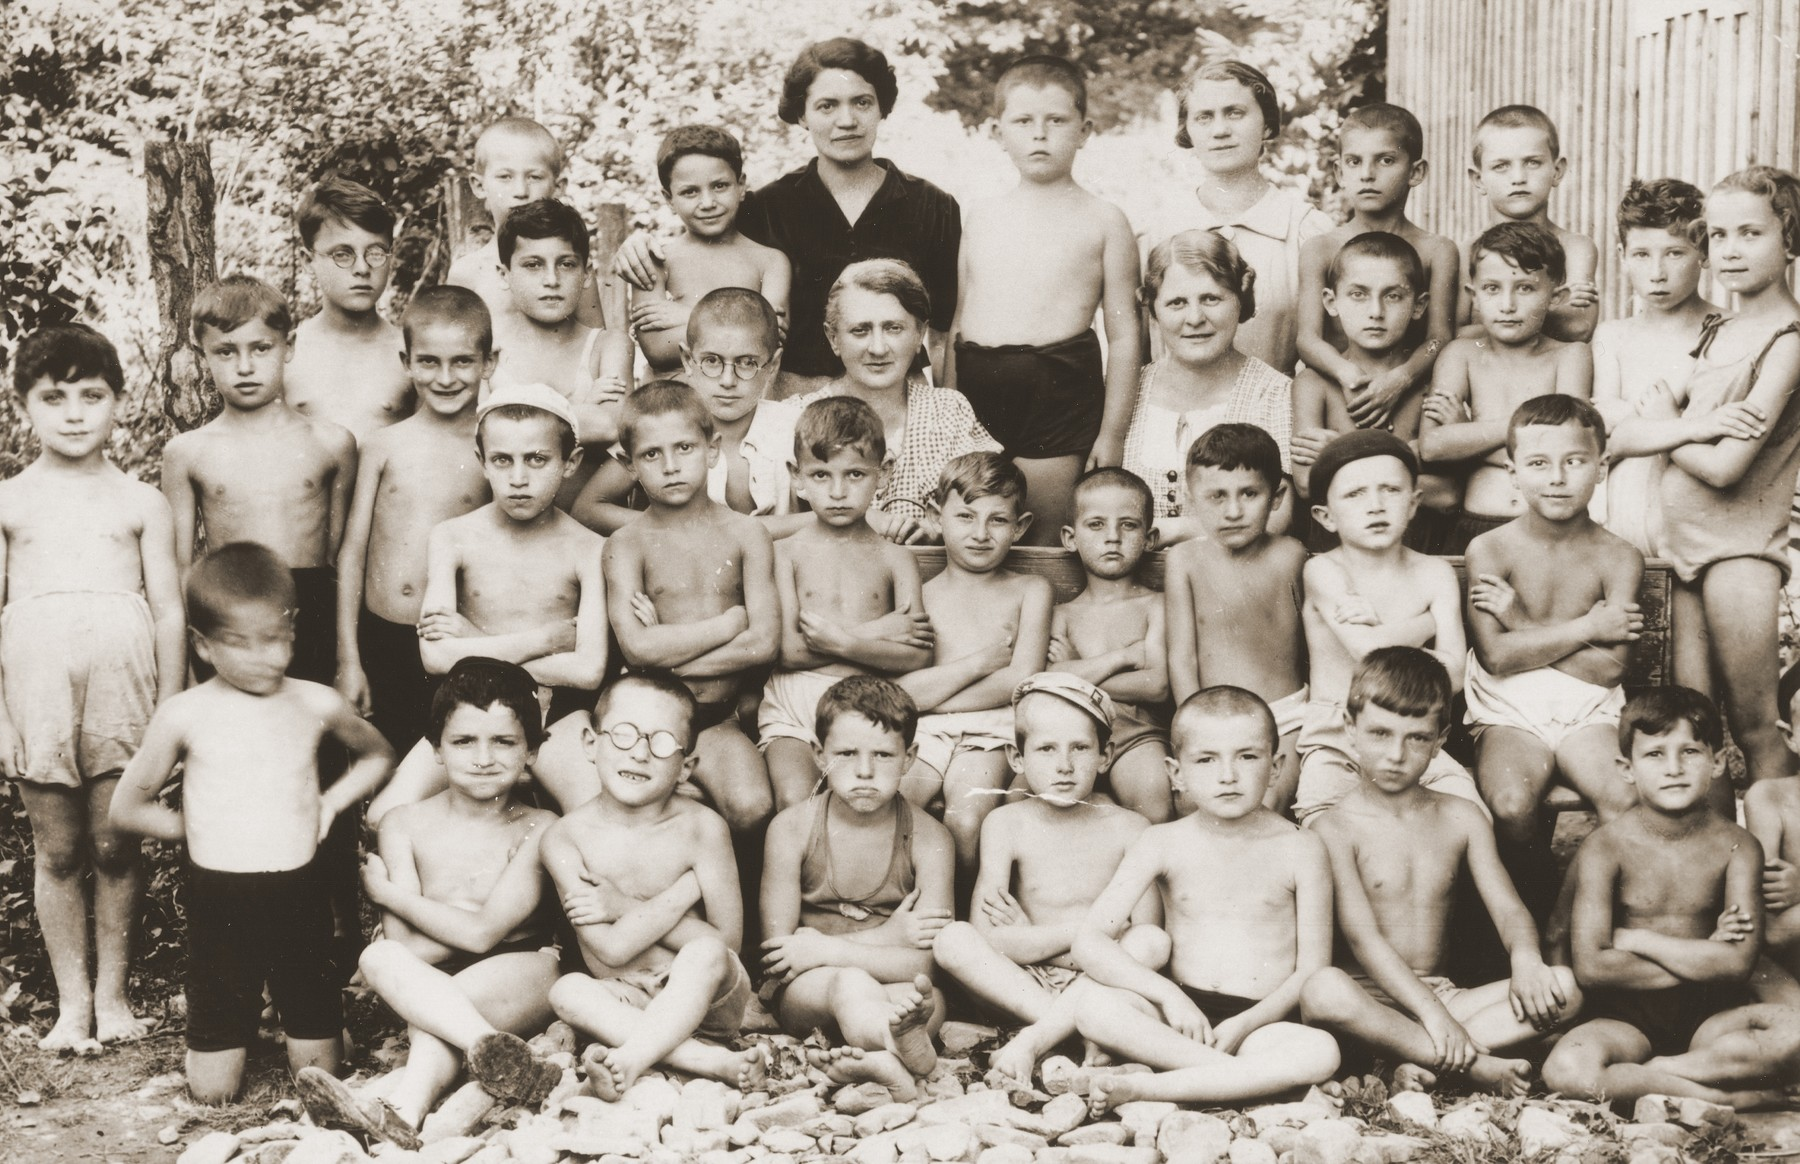 Group portrait of Jewish children at an OSE summer camp.     Among those pictured are Anny (Hubner) Andermann (third row, fifth from the right); OSE pediatrician, Dr. Salter (next to Anny); and her son, Frederick Andermann (standing between the two women).